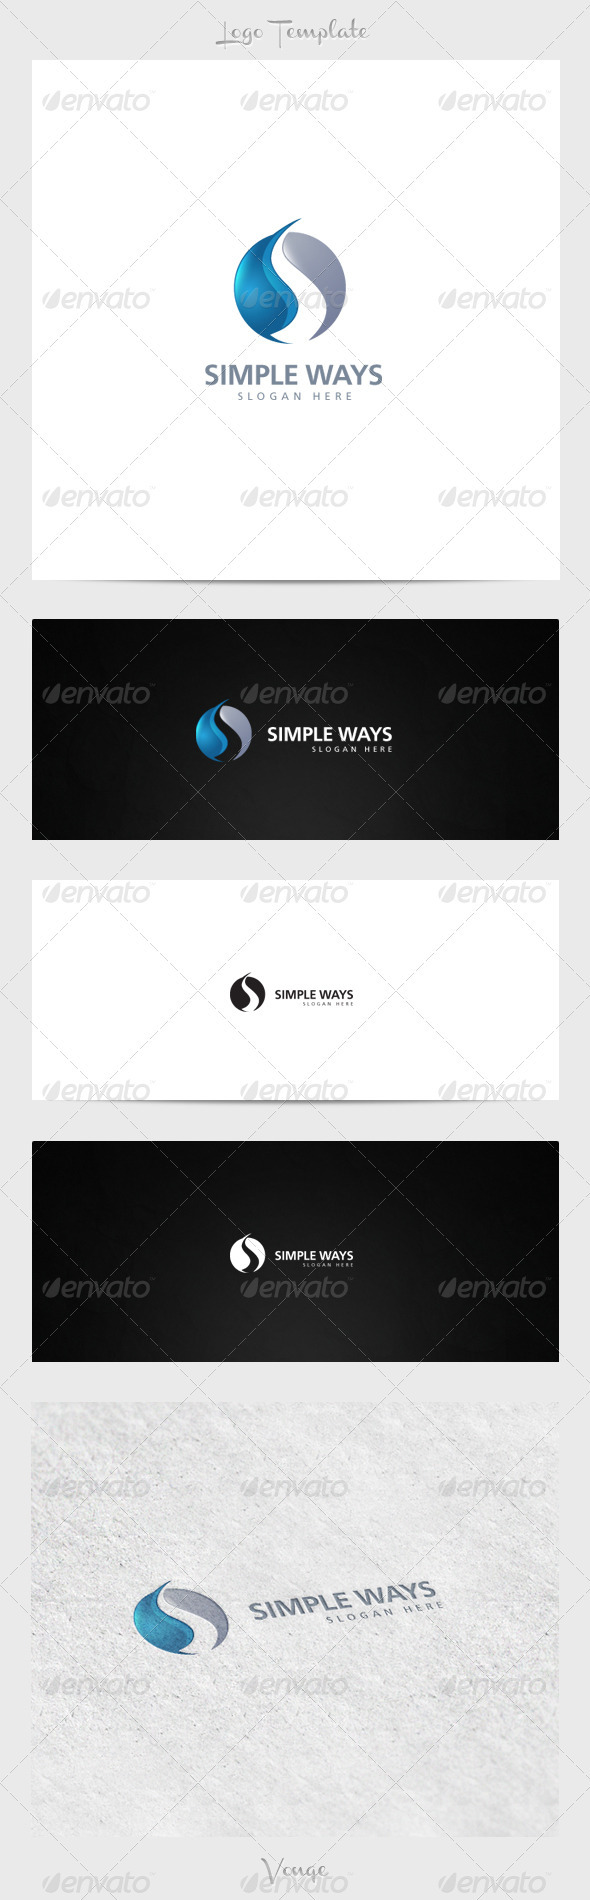 Simple Ways - Symbols Logo Templates